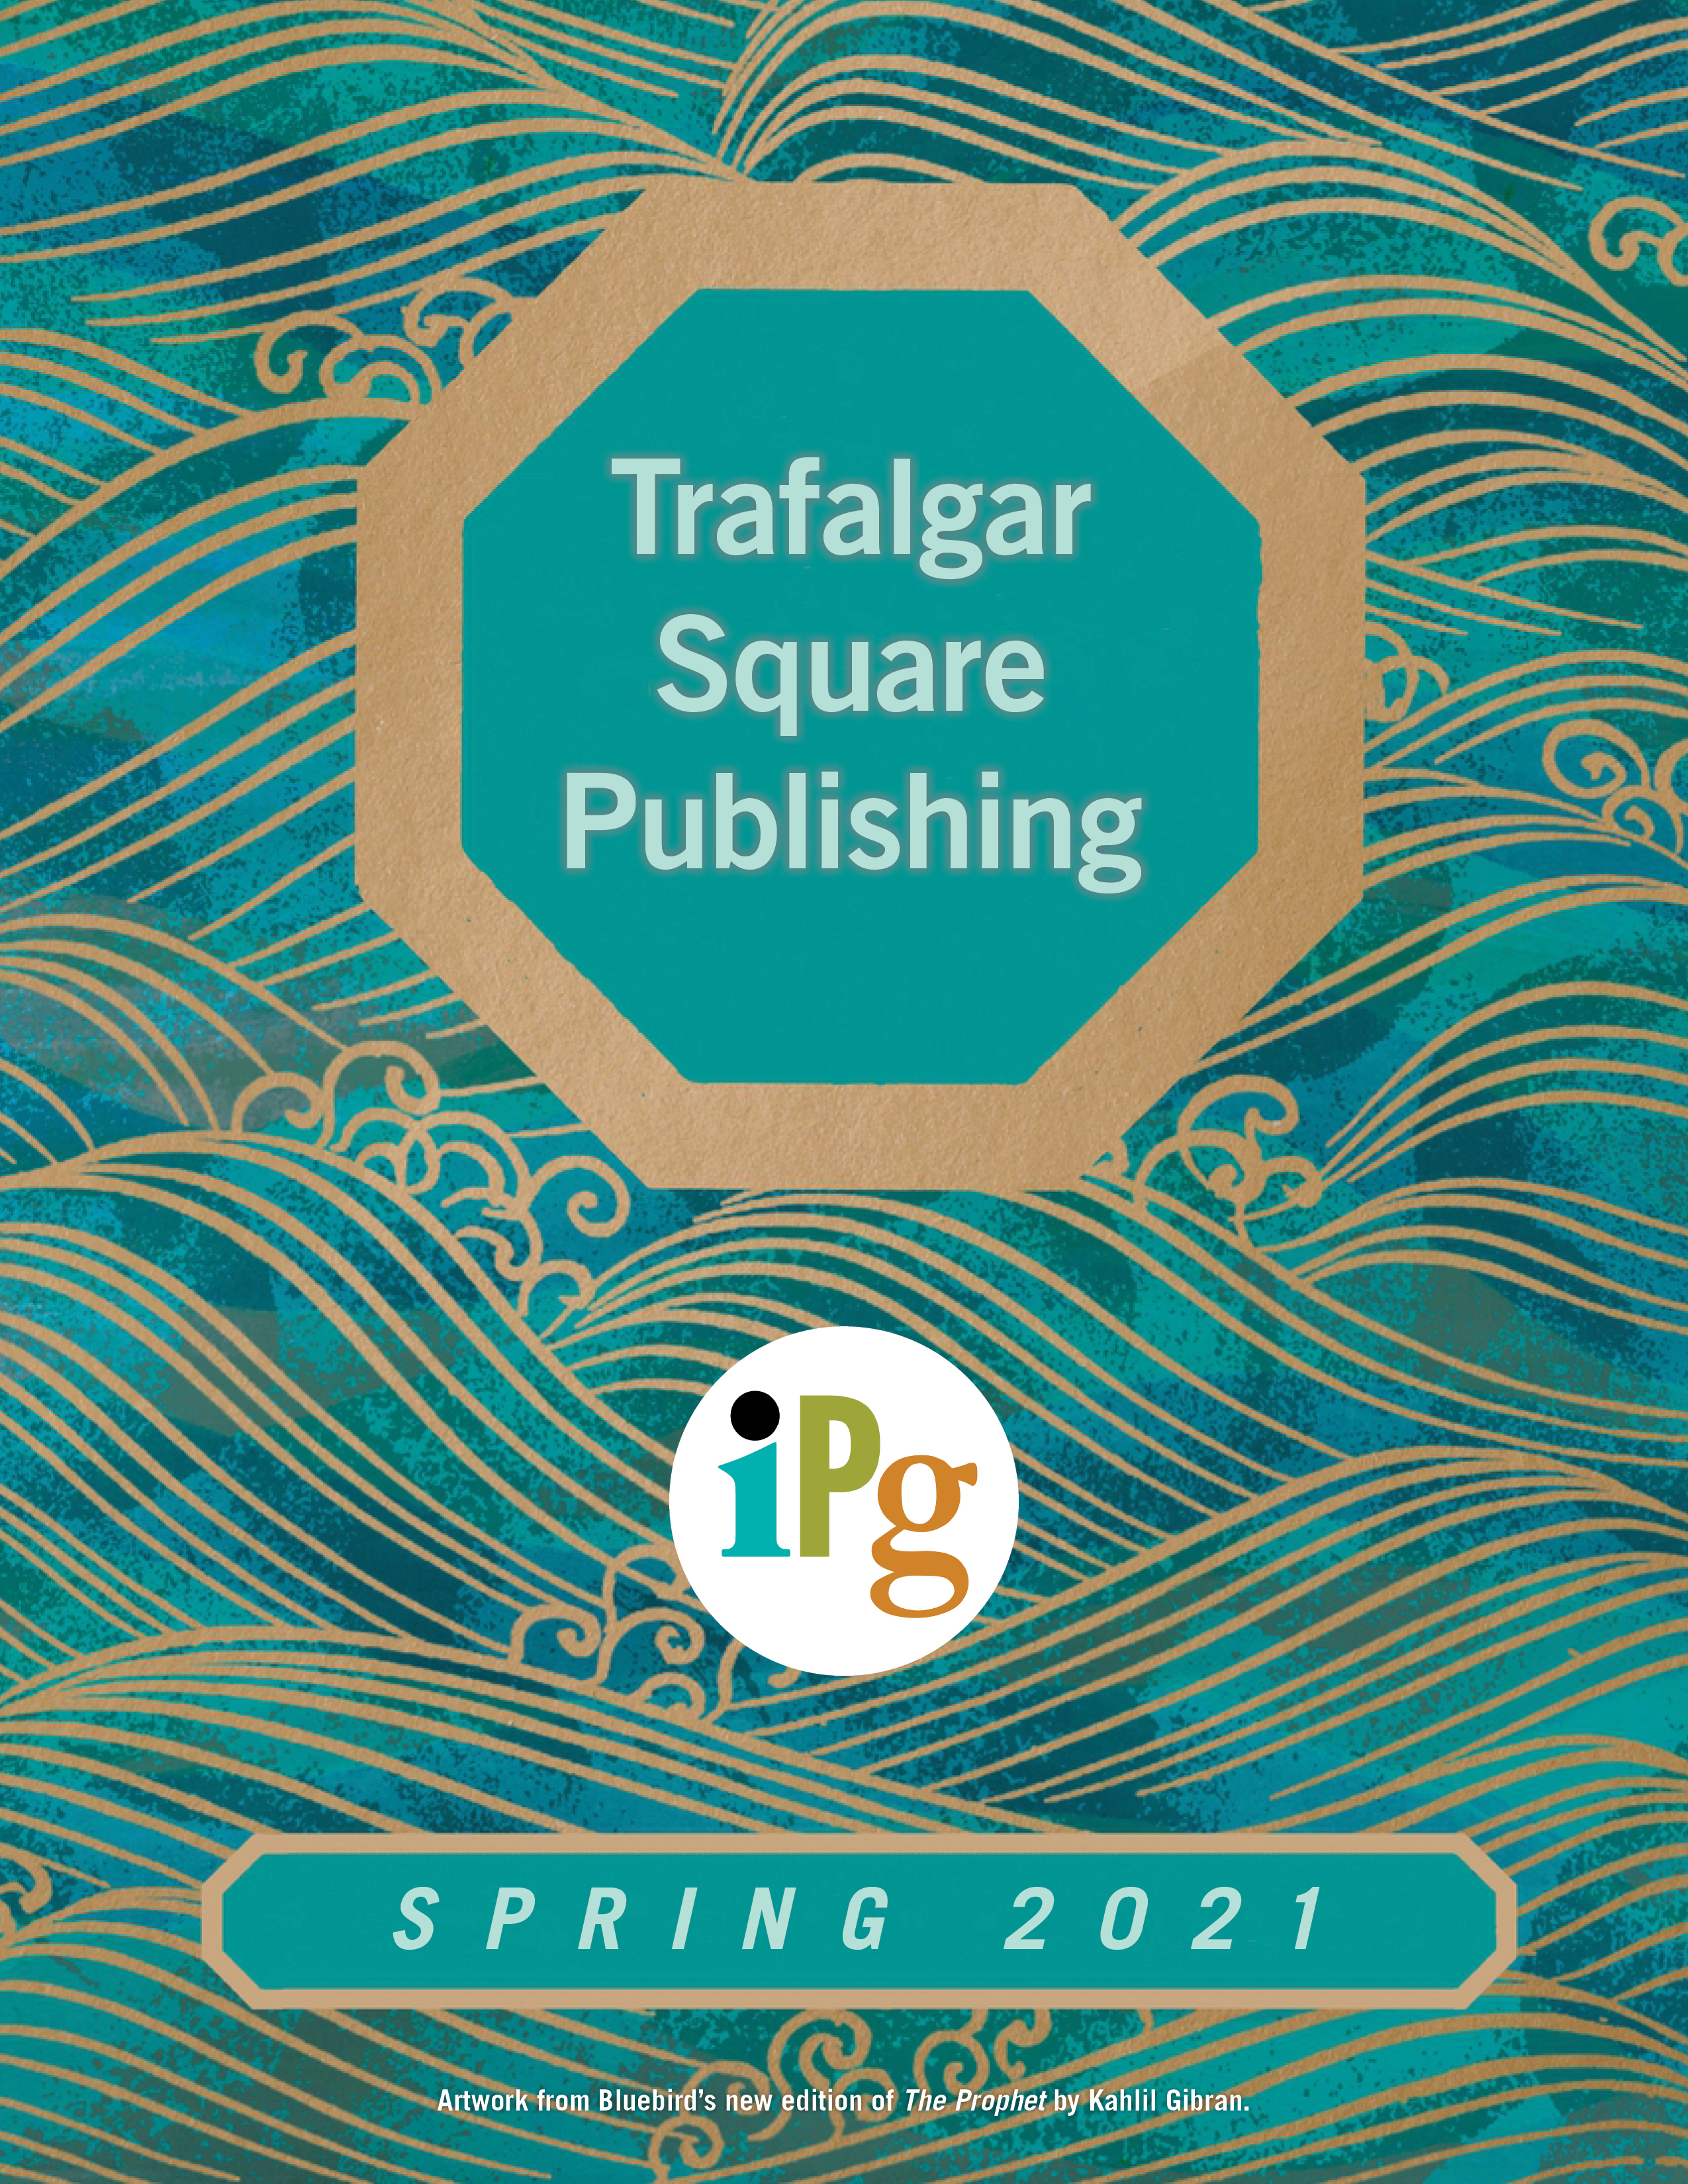 Trafalgar Square Publishing Spring 2021